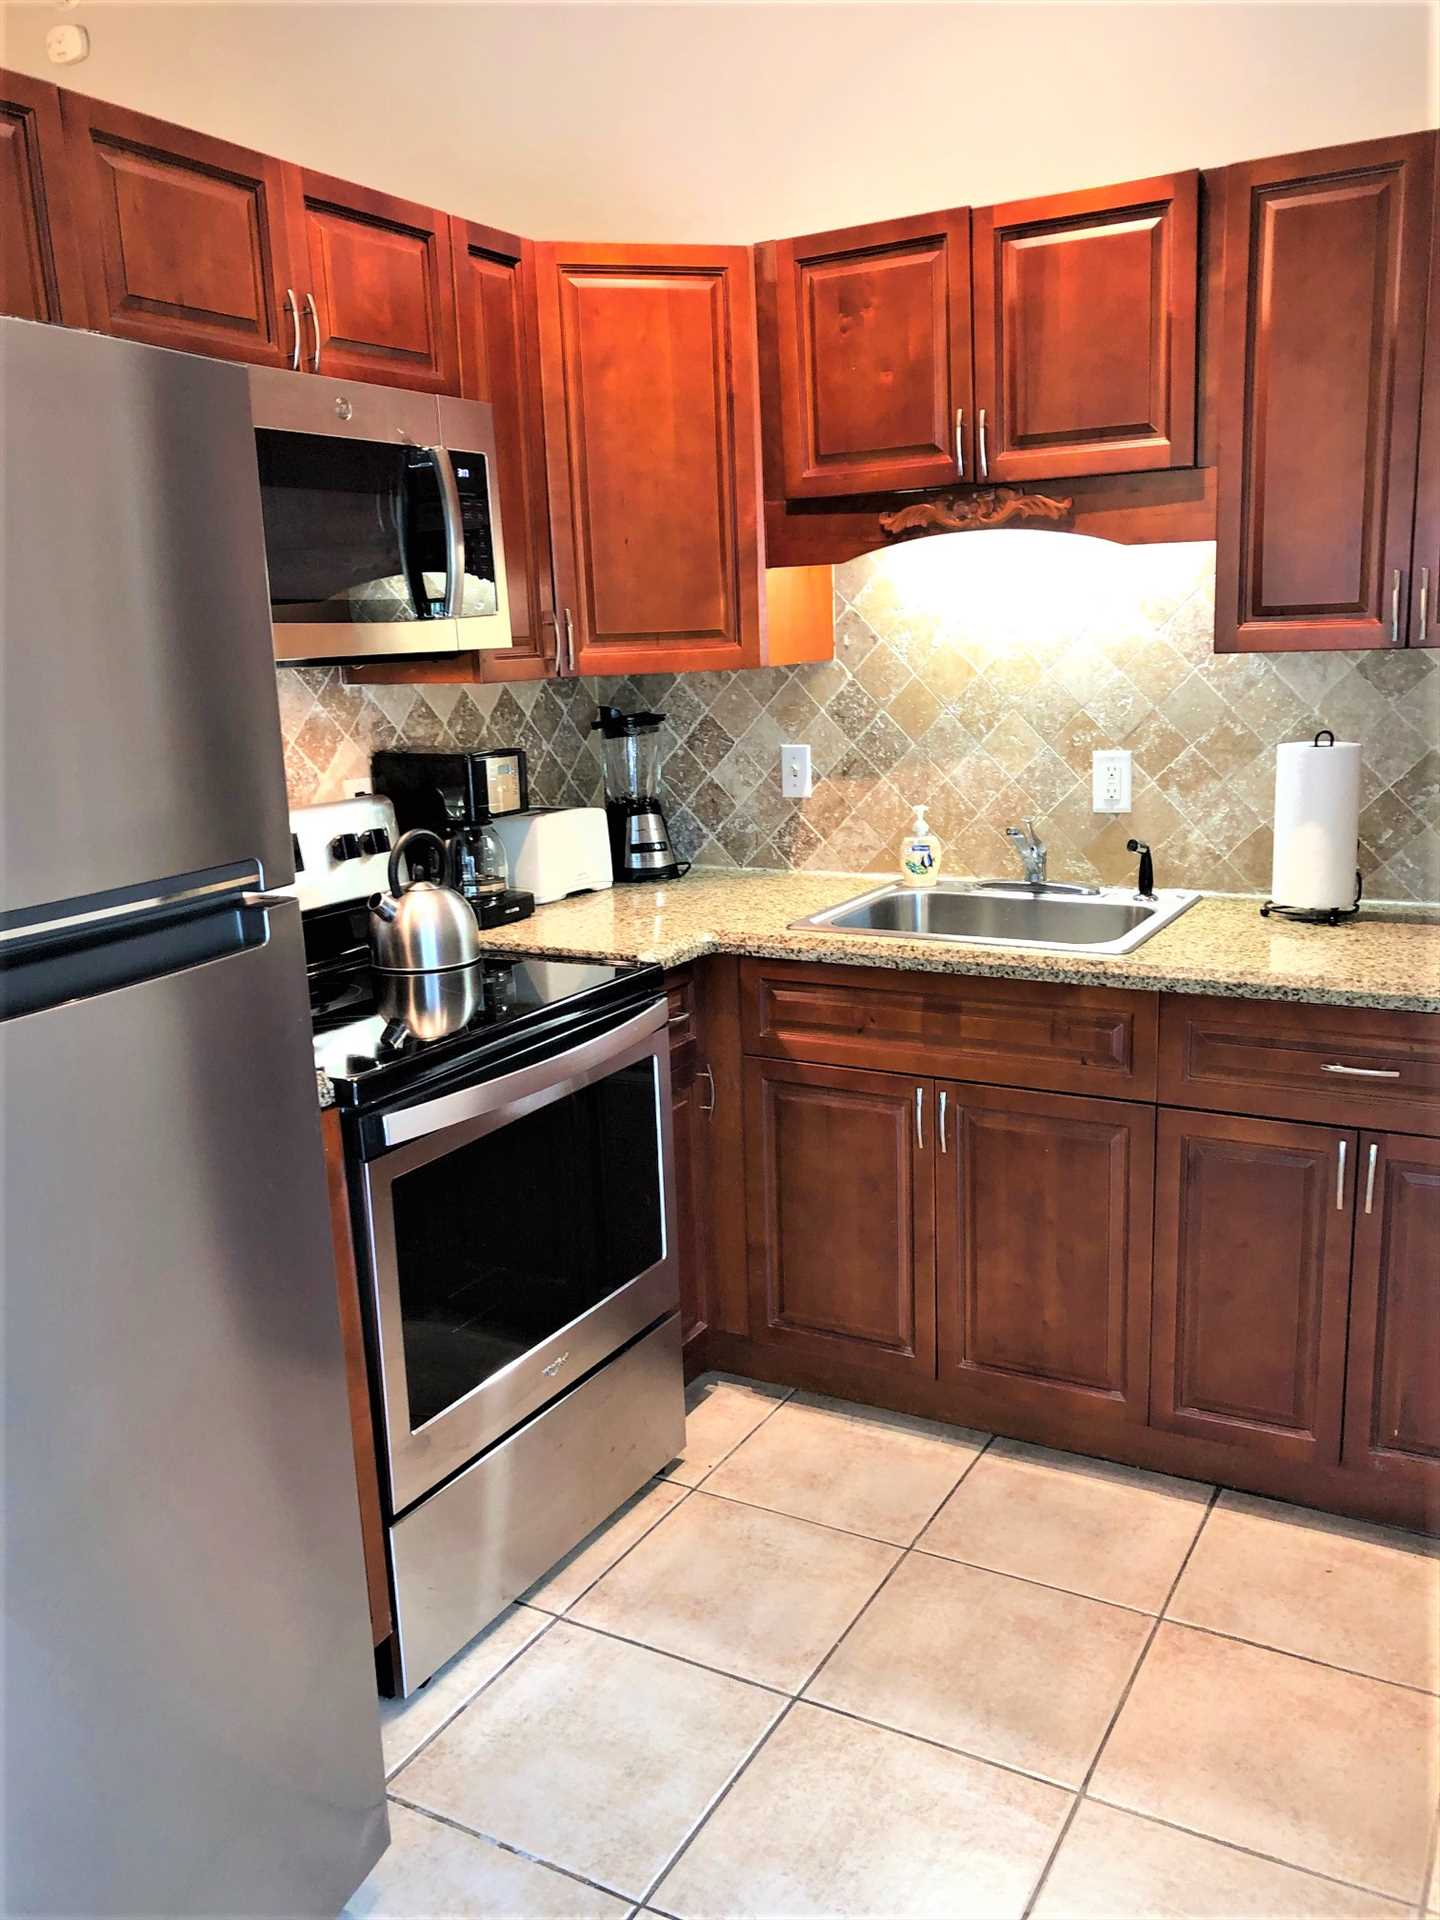 Galley kitchen features all stainless appliances.